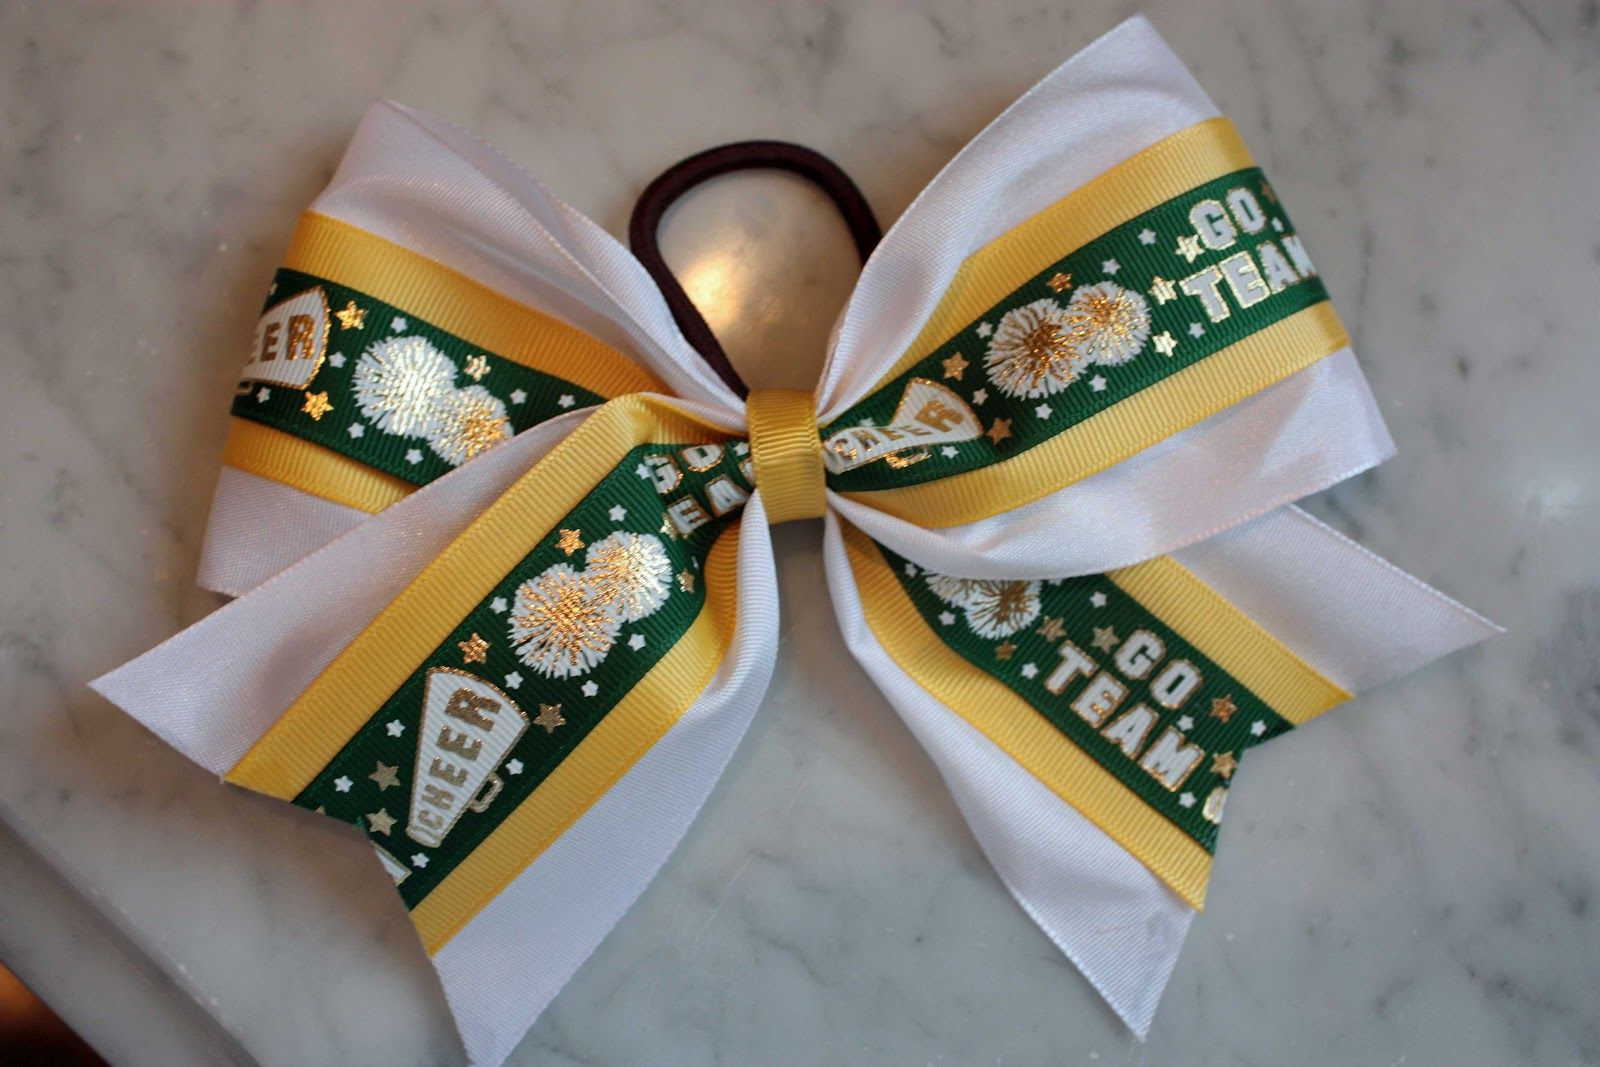 instructions on how to make a cheerleading bow